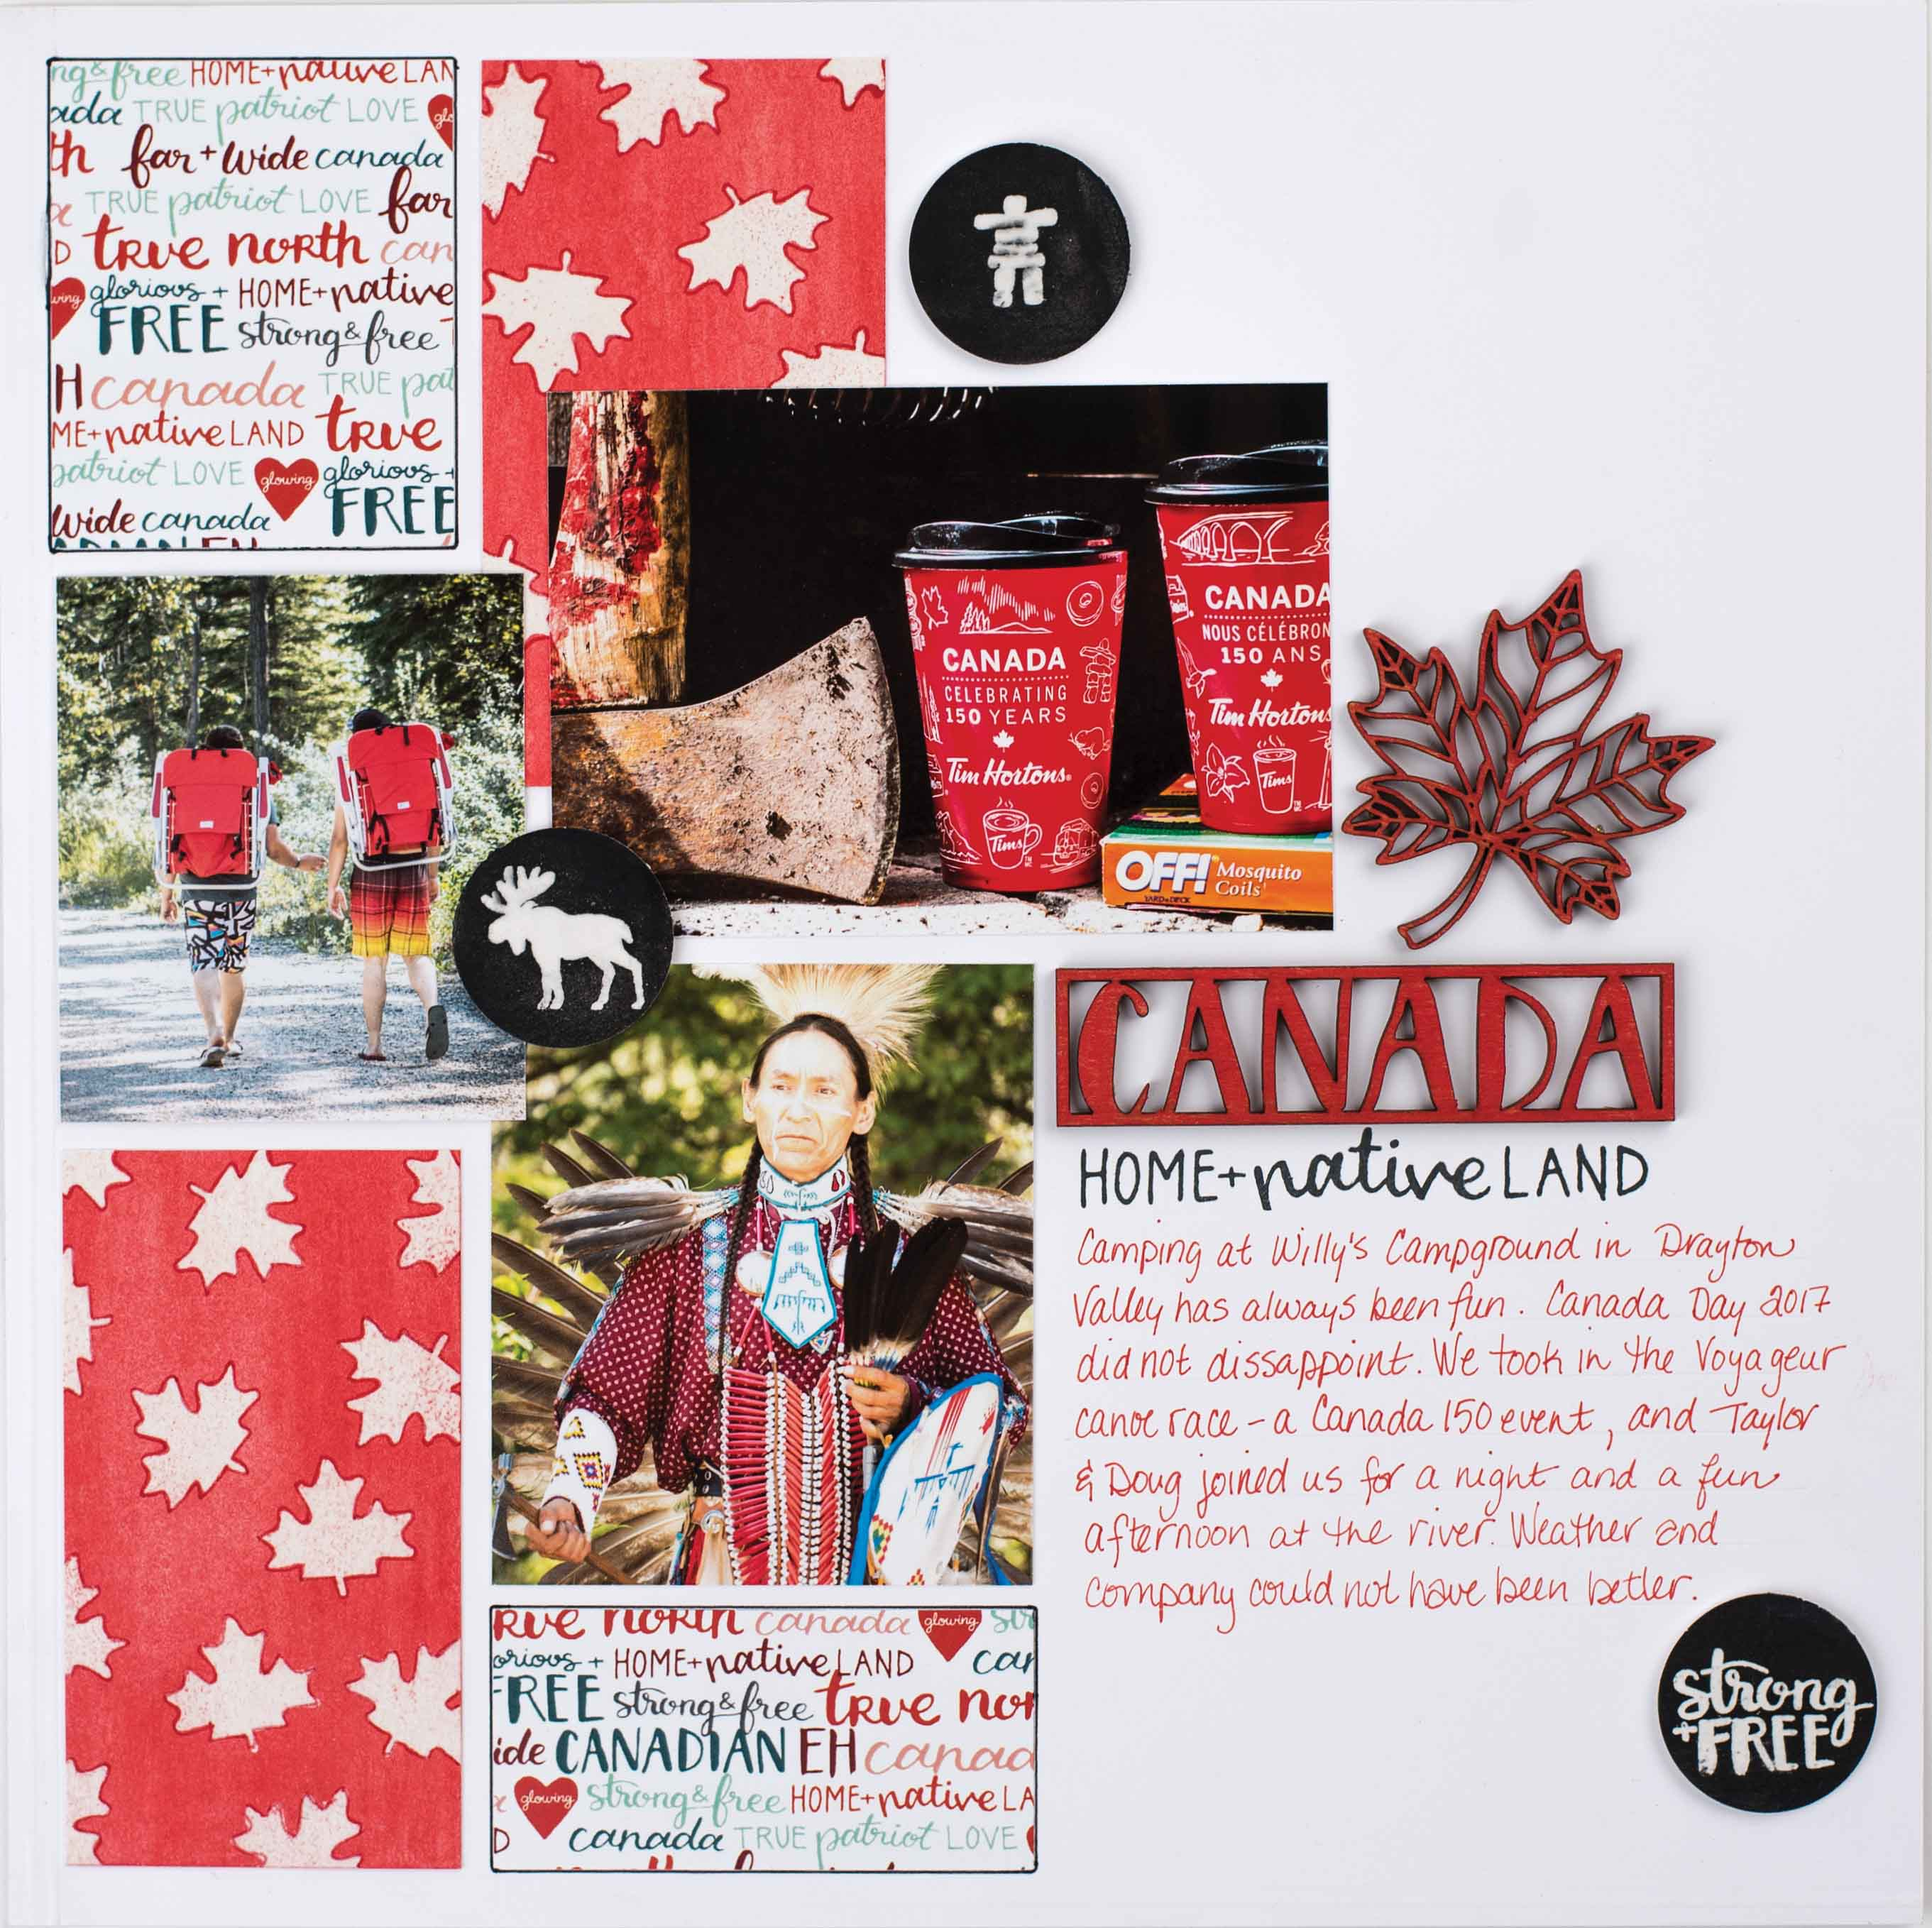 Canadian Themed Scrapbook Layout   Featuring Wild Whisper Designs Straon & Free Collection   Designed by Kim Gowdy   Creative Scrapbooker Magazine #scrapbooking #wildwhisper #canadian